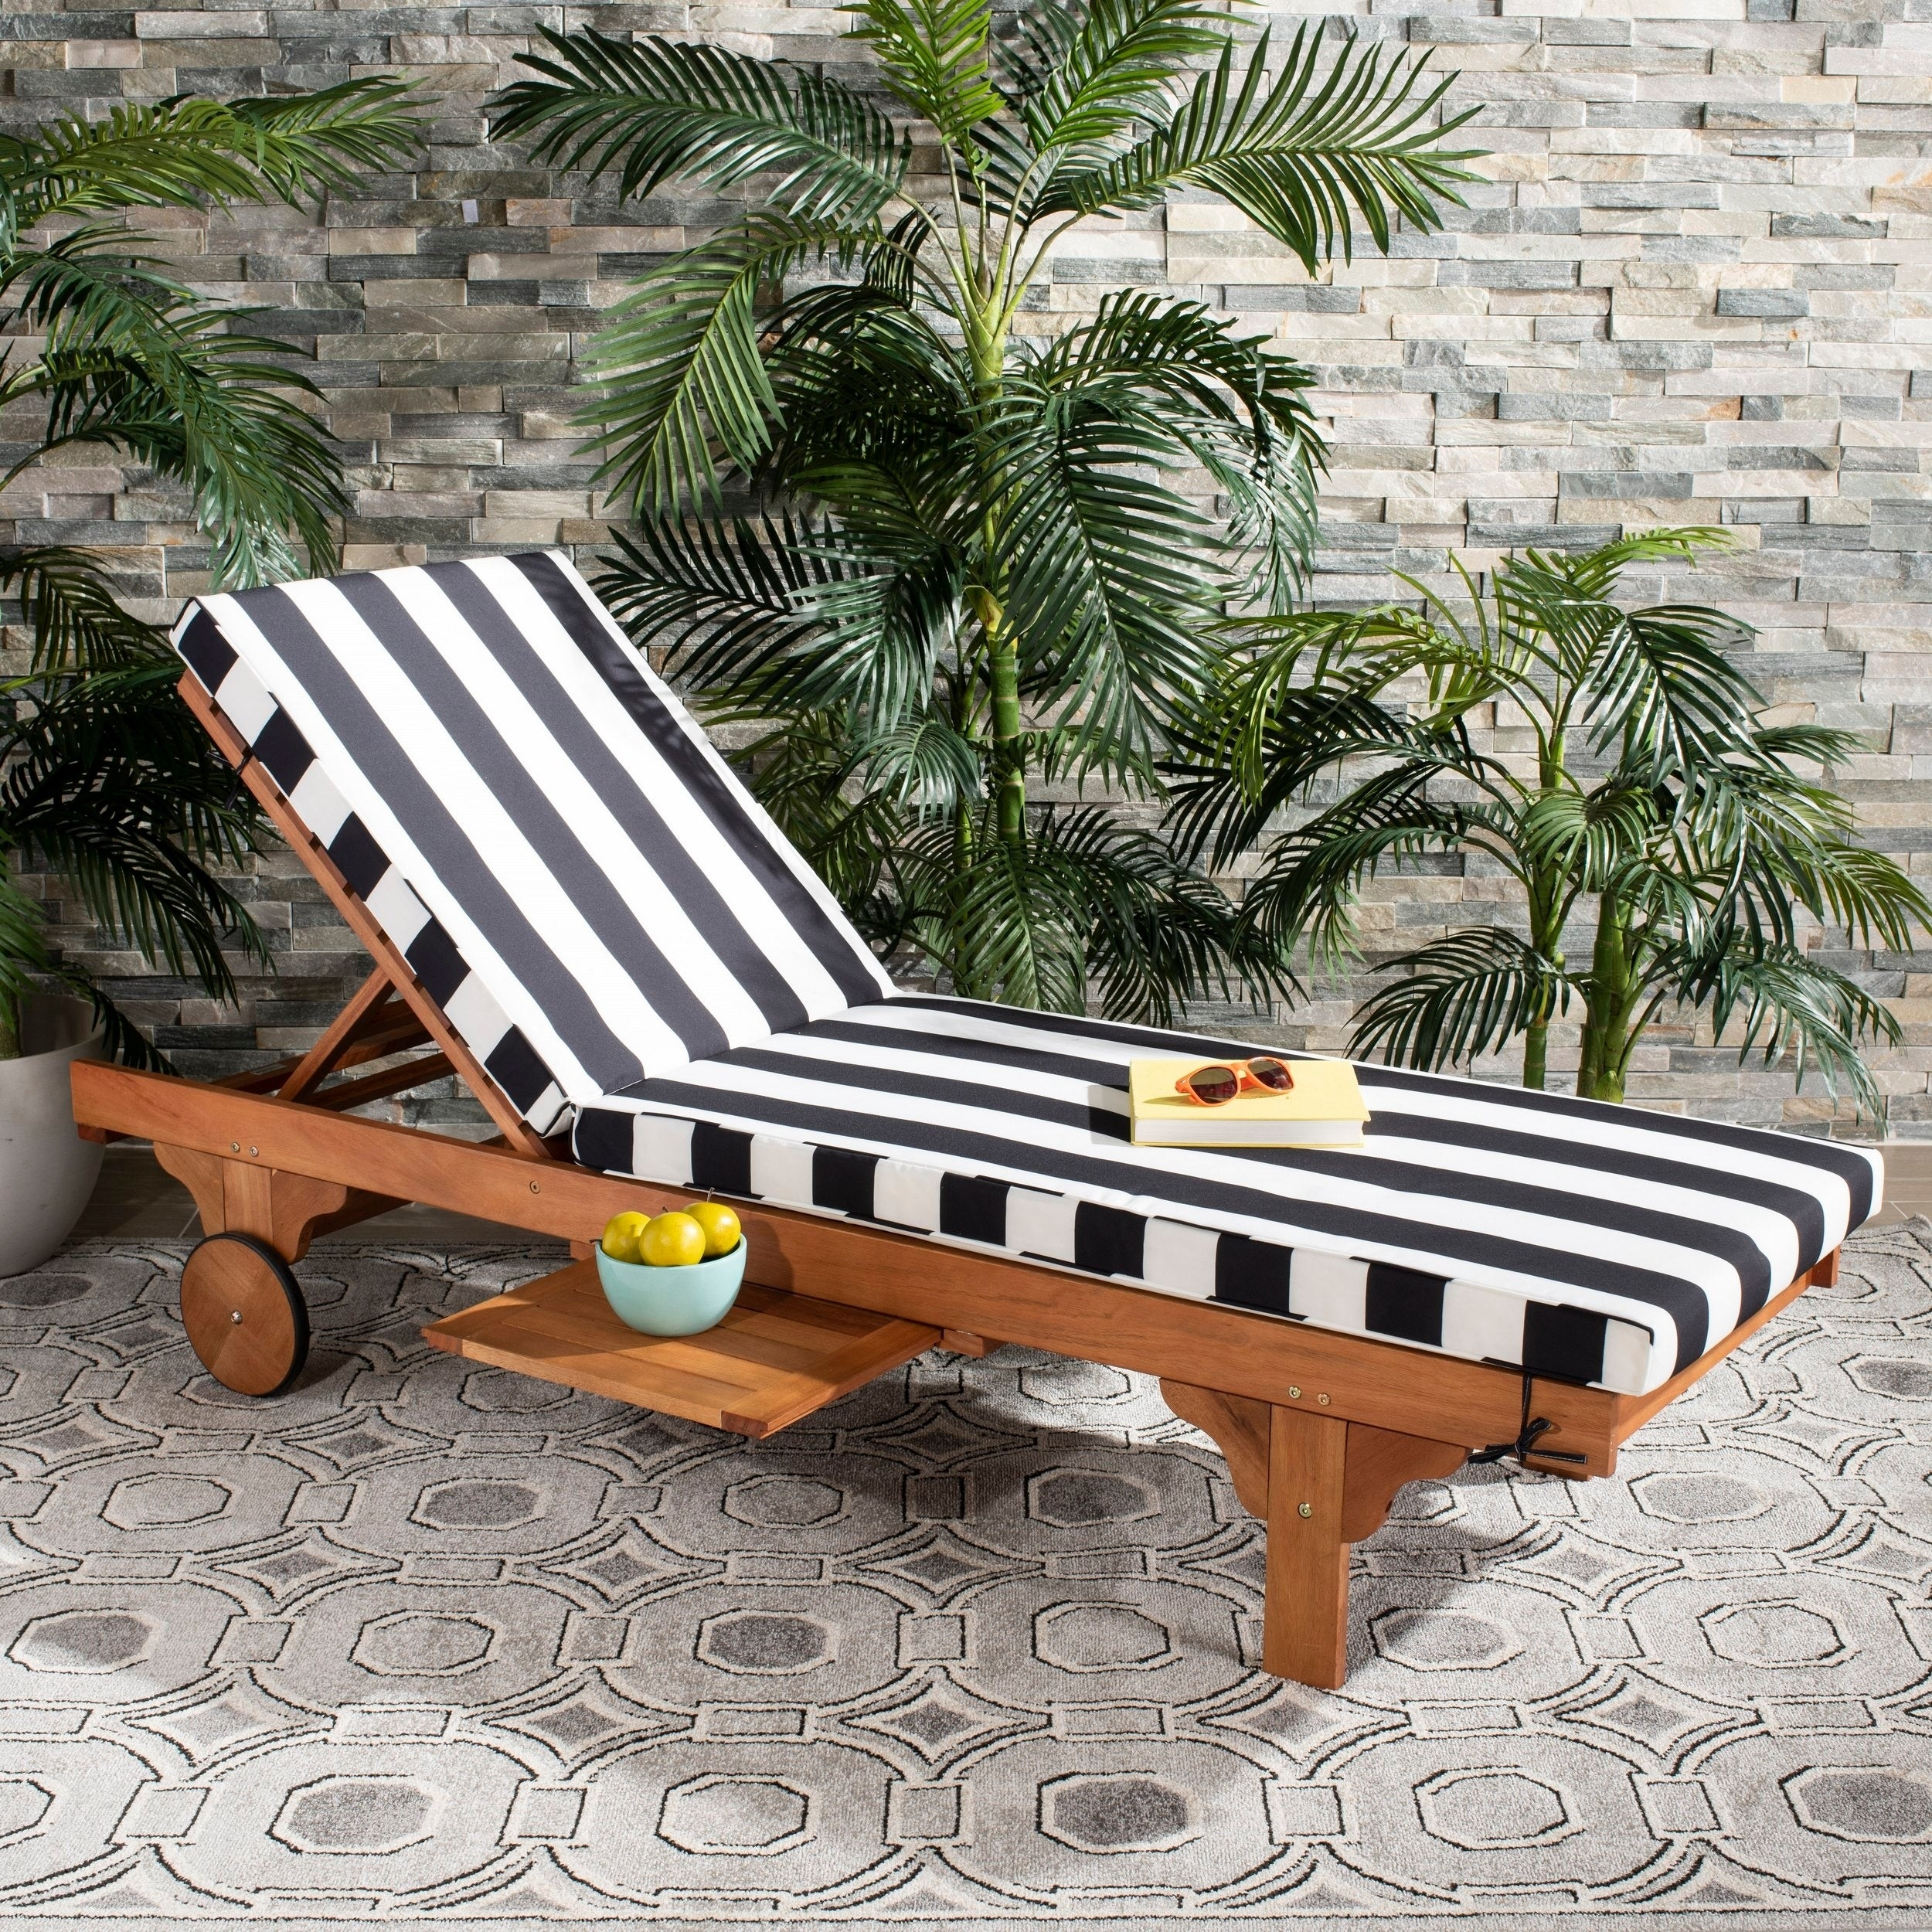 Safavieh Outdoor Living Newport Ash Black/ White Stripe Cart Wheel  Adjustable Chaise Lounge Chair